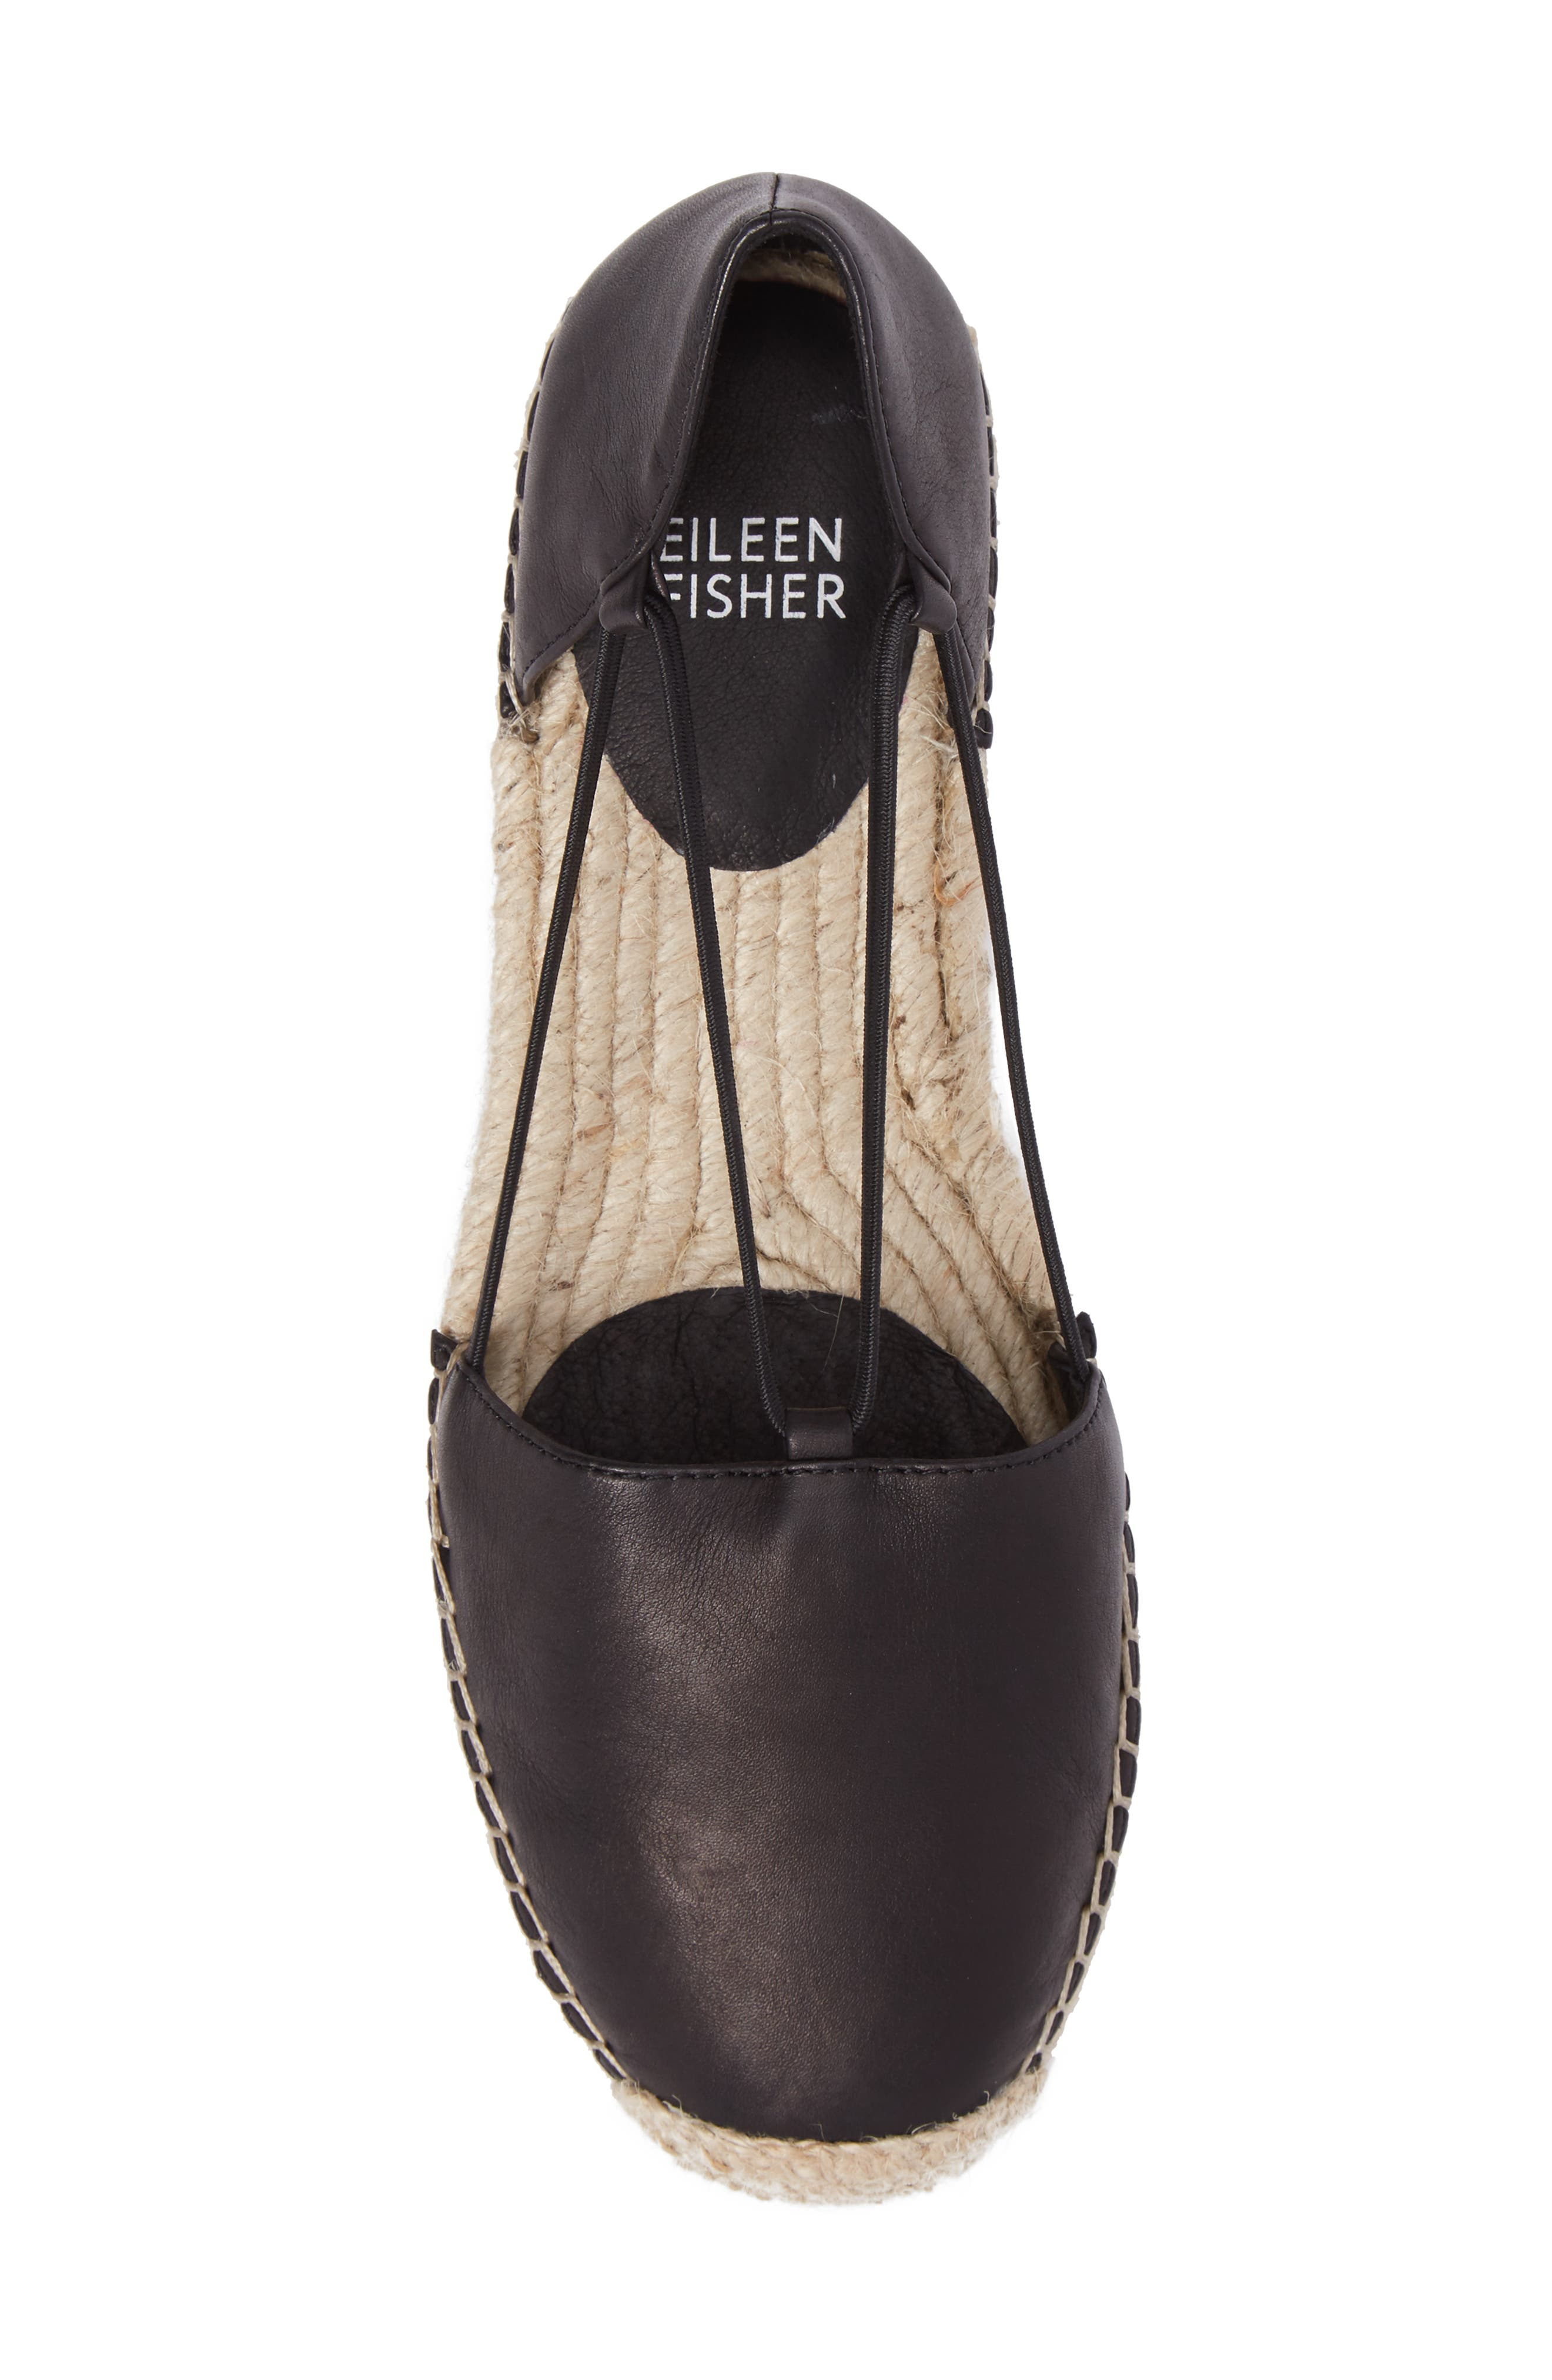 EILEEN FISHER, Lee Espadrille Flat, Alternate thumbnail 5, color, BLACK WASHED LEATHER